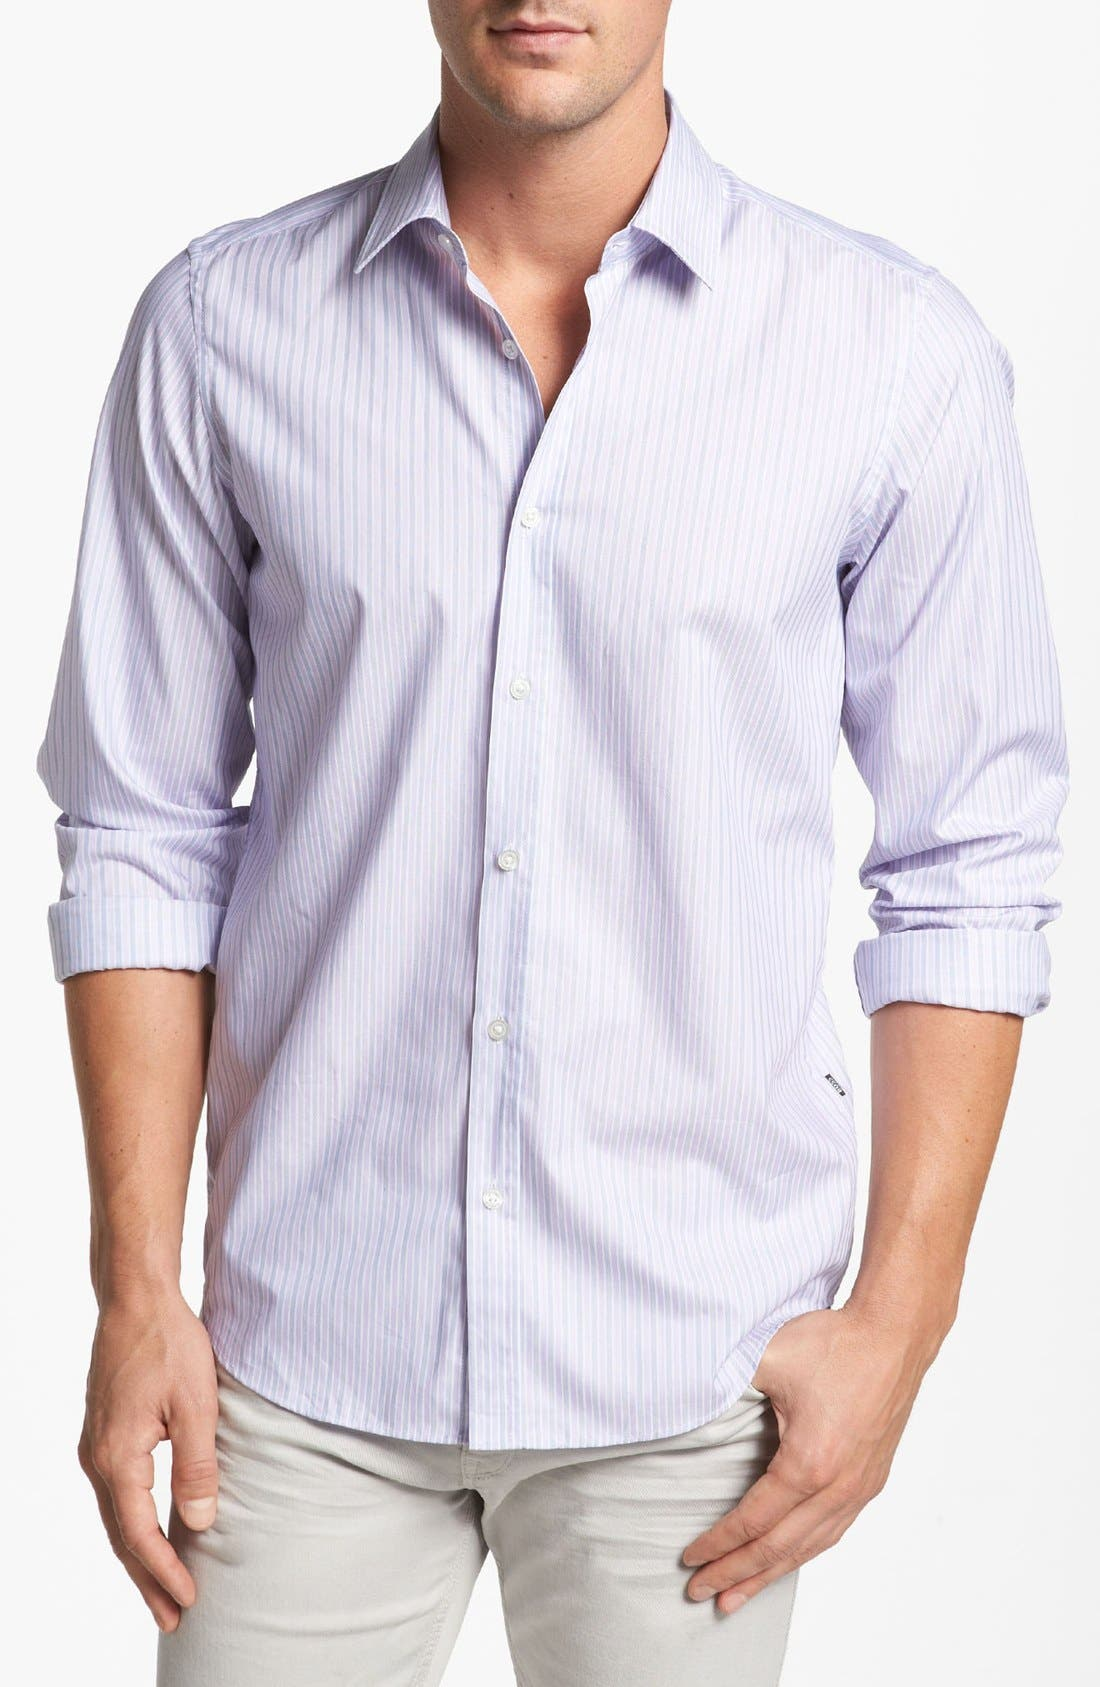 Main Image - BOSS HUGO BOSS 'Lucas' Regular Fit Textured Sport Shirt